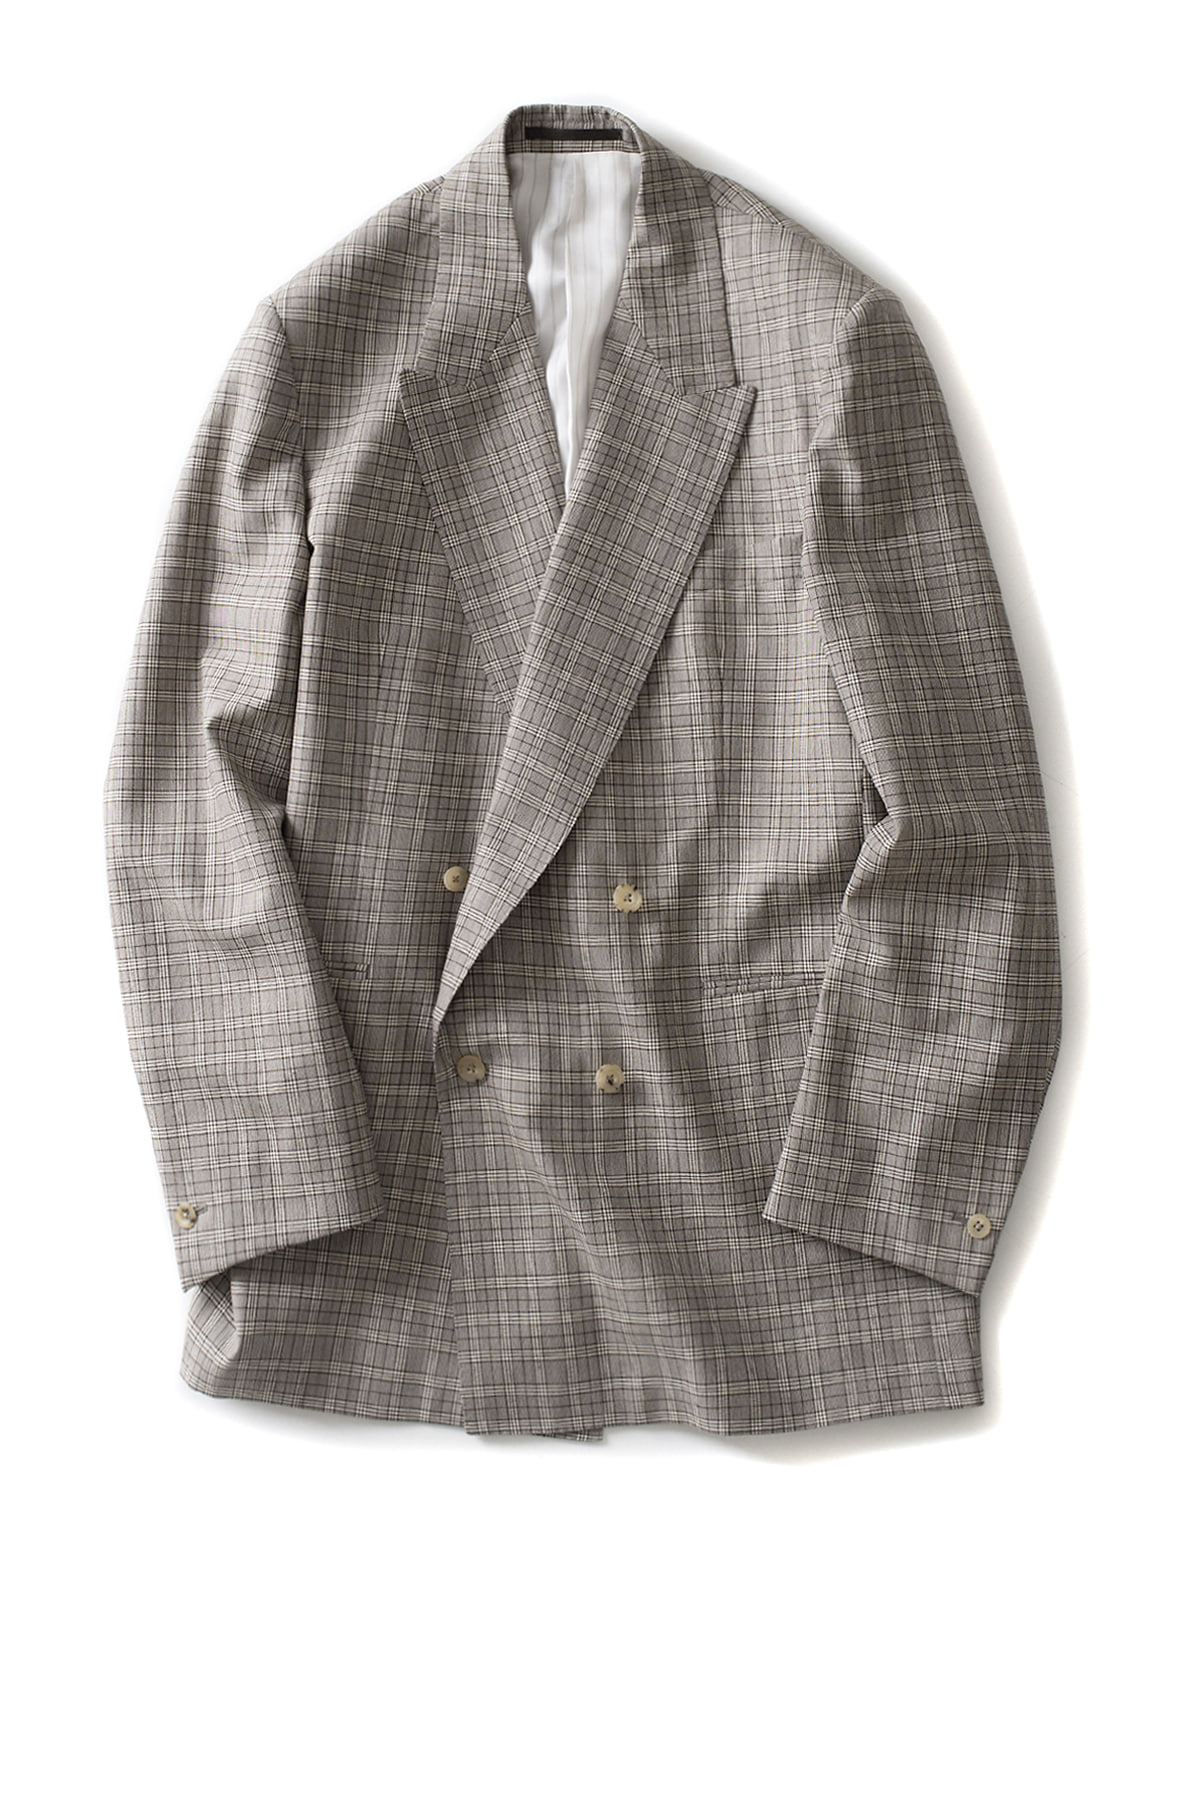 E. Tautz : DB2 Show2 Jacket (Glen Check)